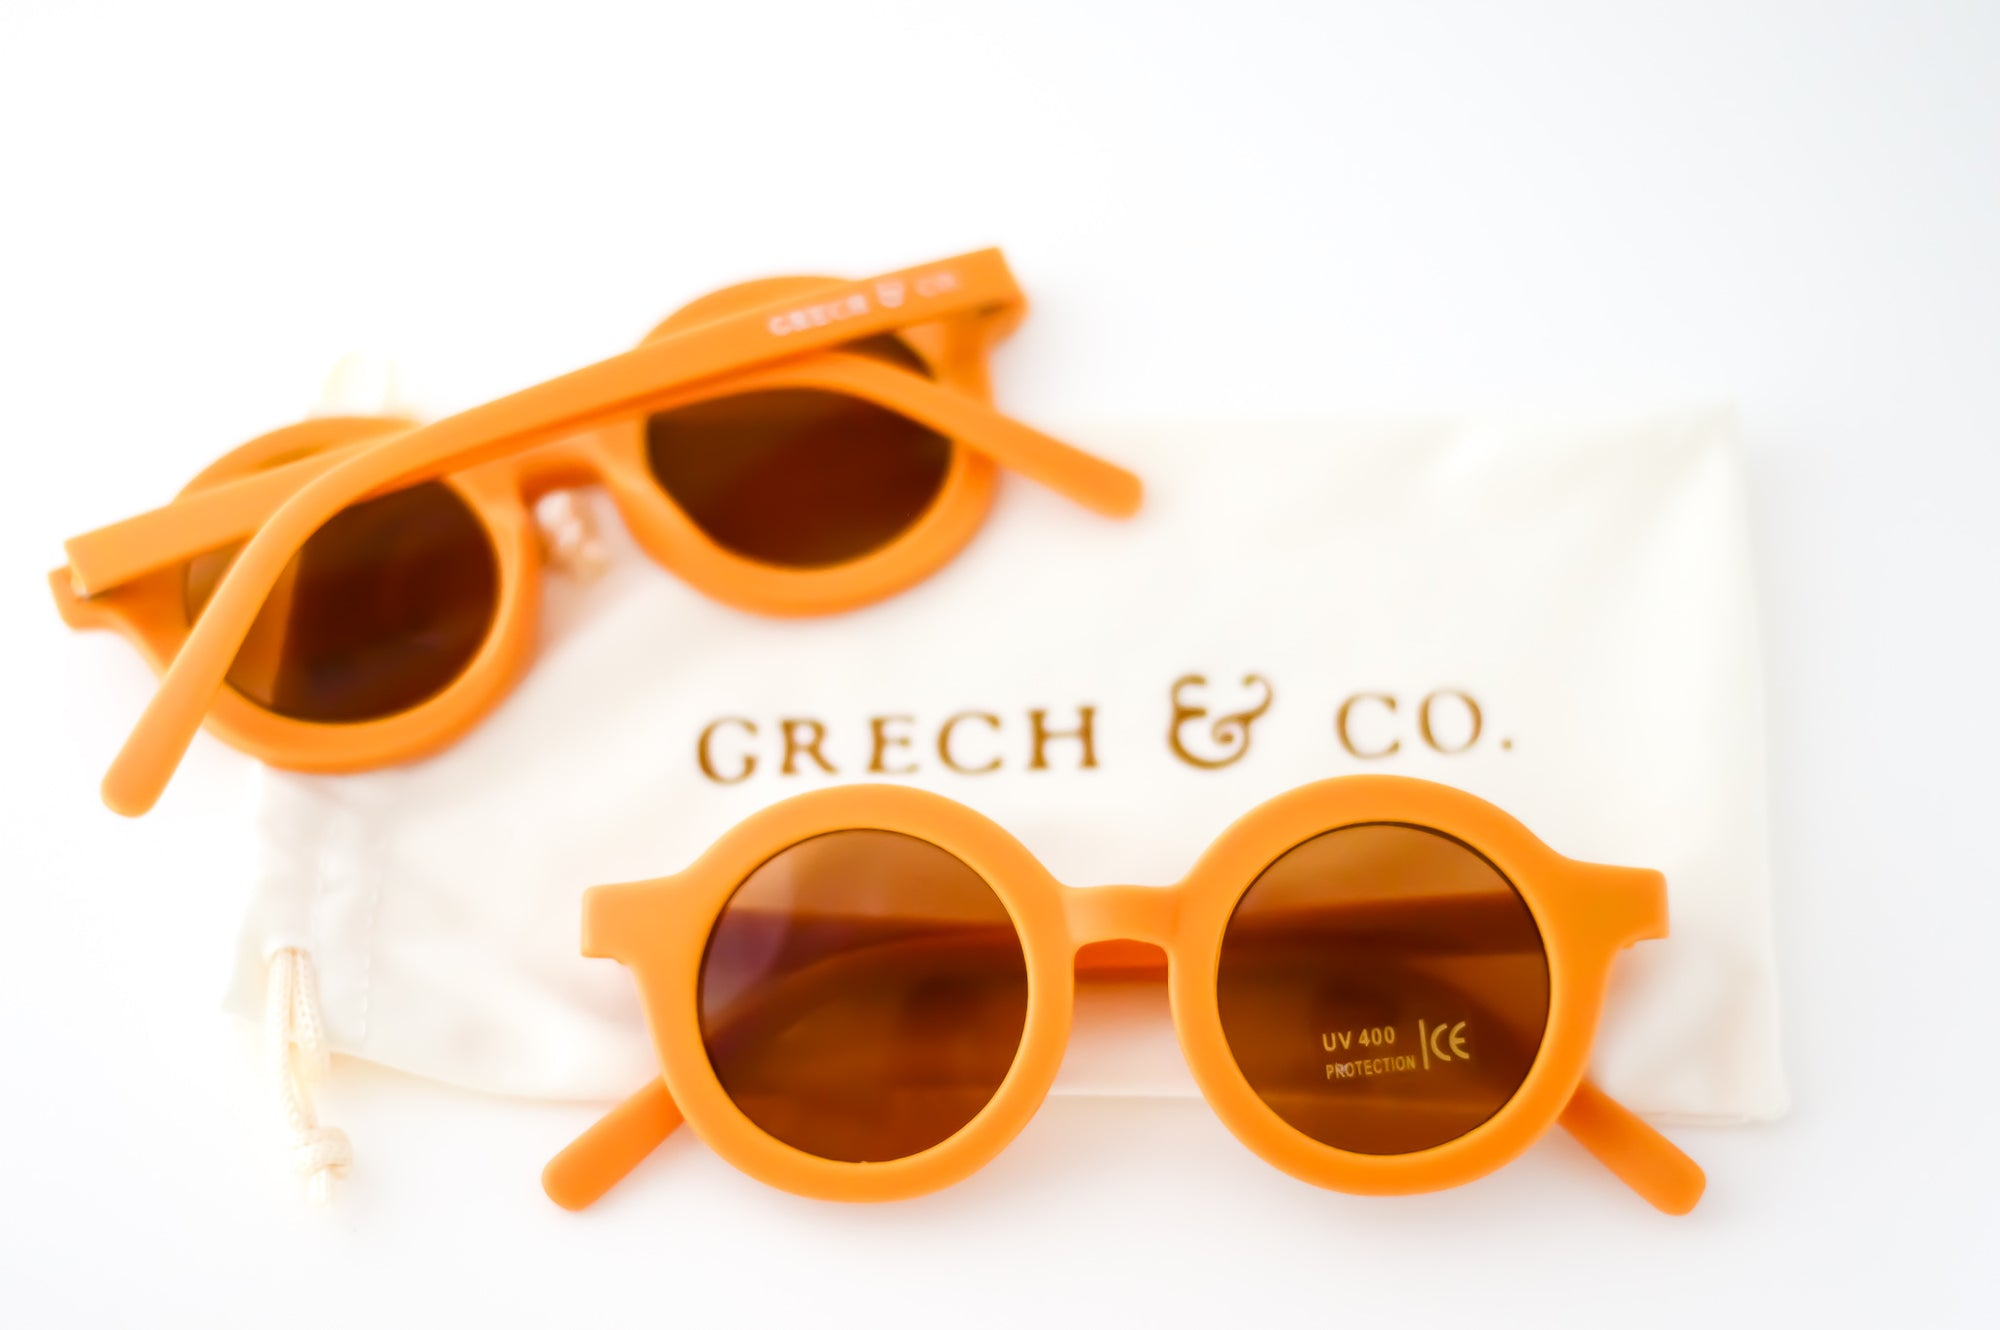 Grech & Co Sustainable Sunglasses - Golden